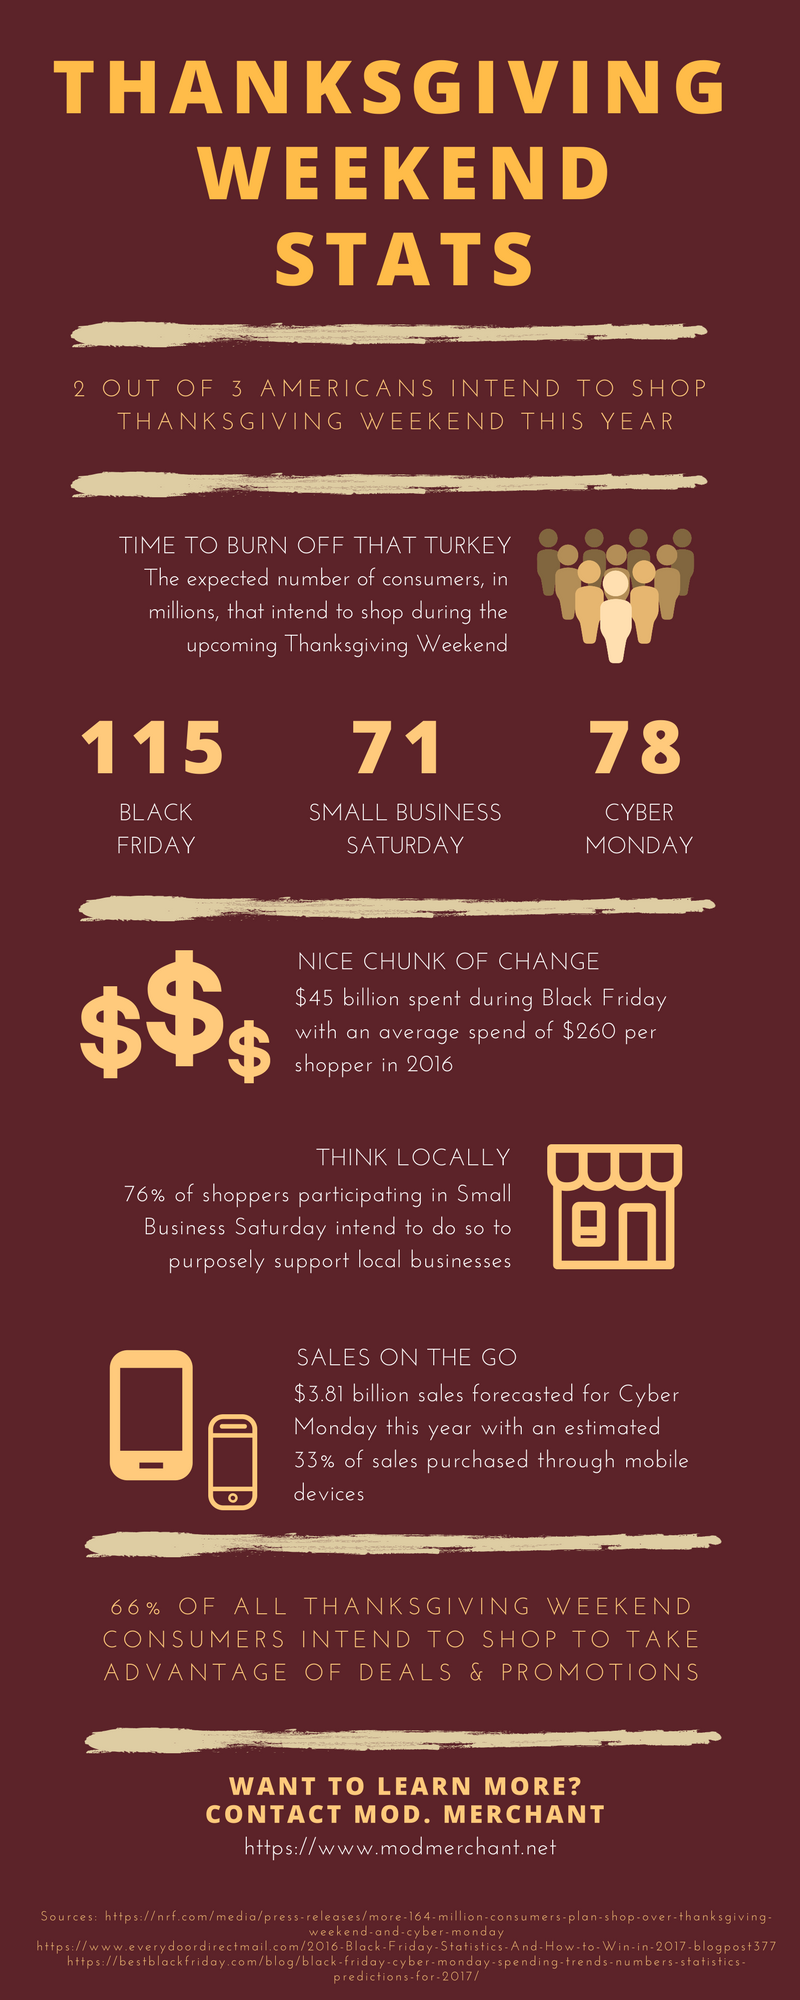 Mod. Merchant Black Friday Small Business Saturday Cyber Monday.png